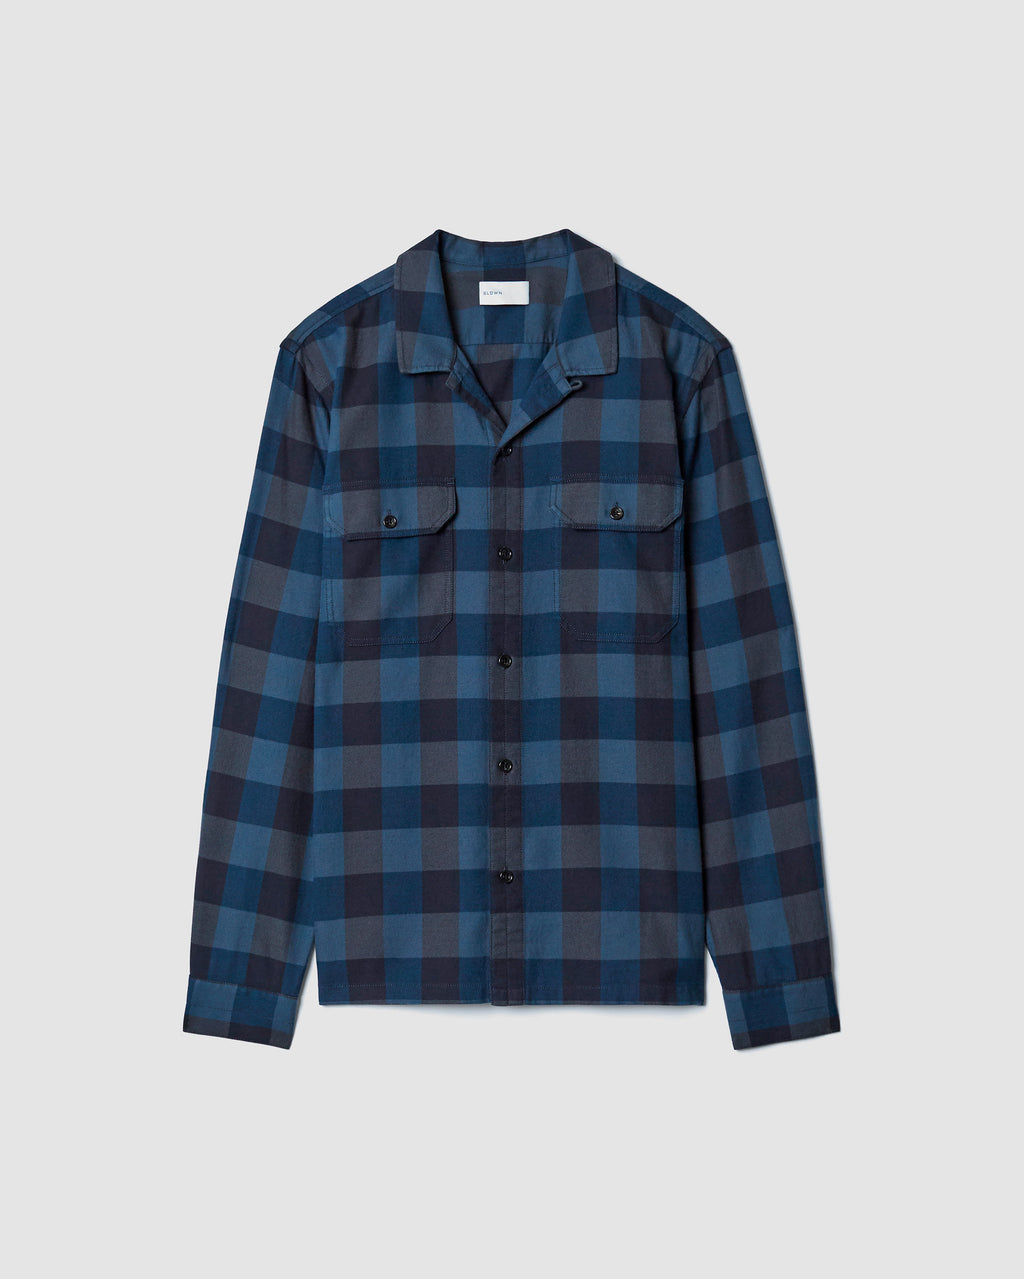 The Guetes Shirt in Navy Combo